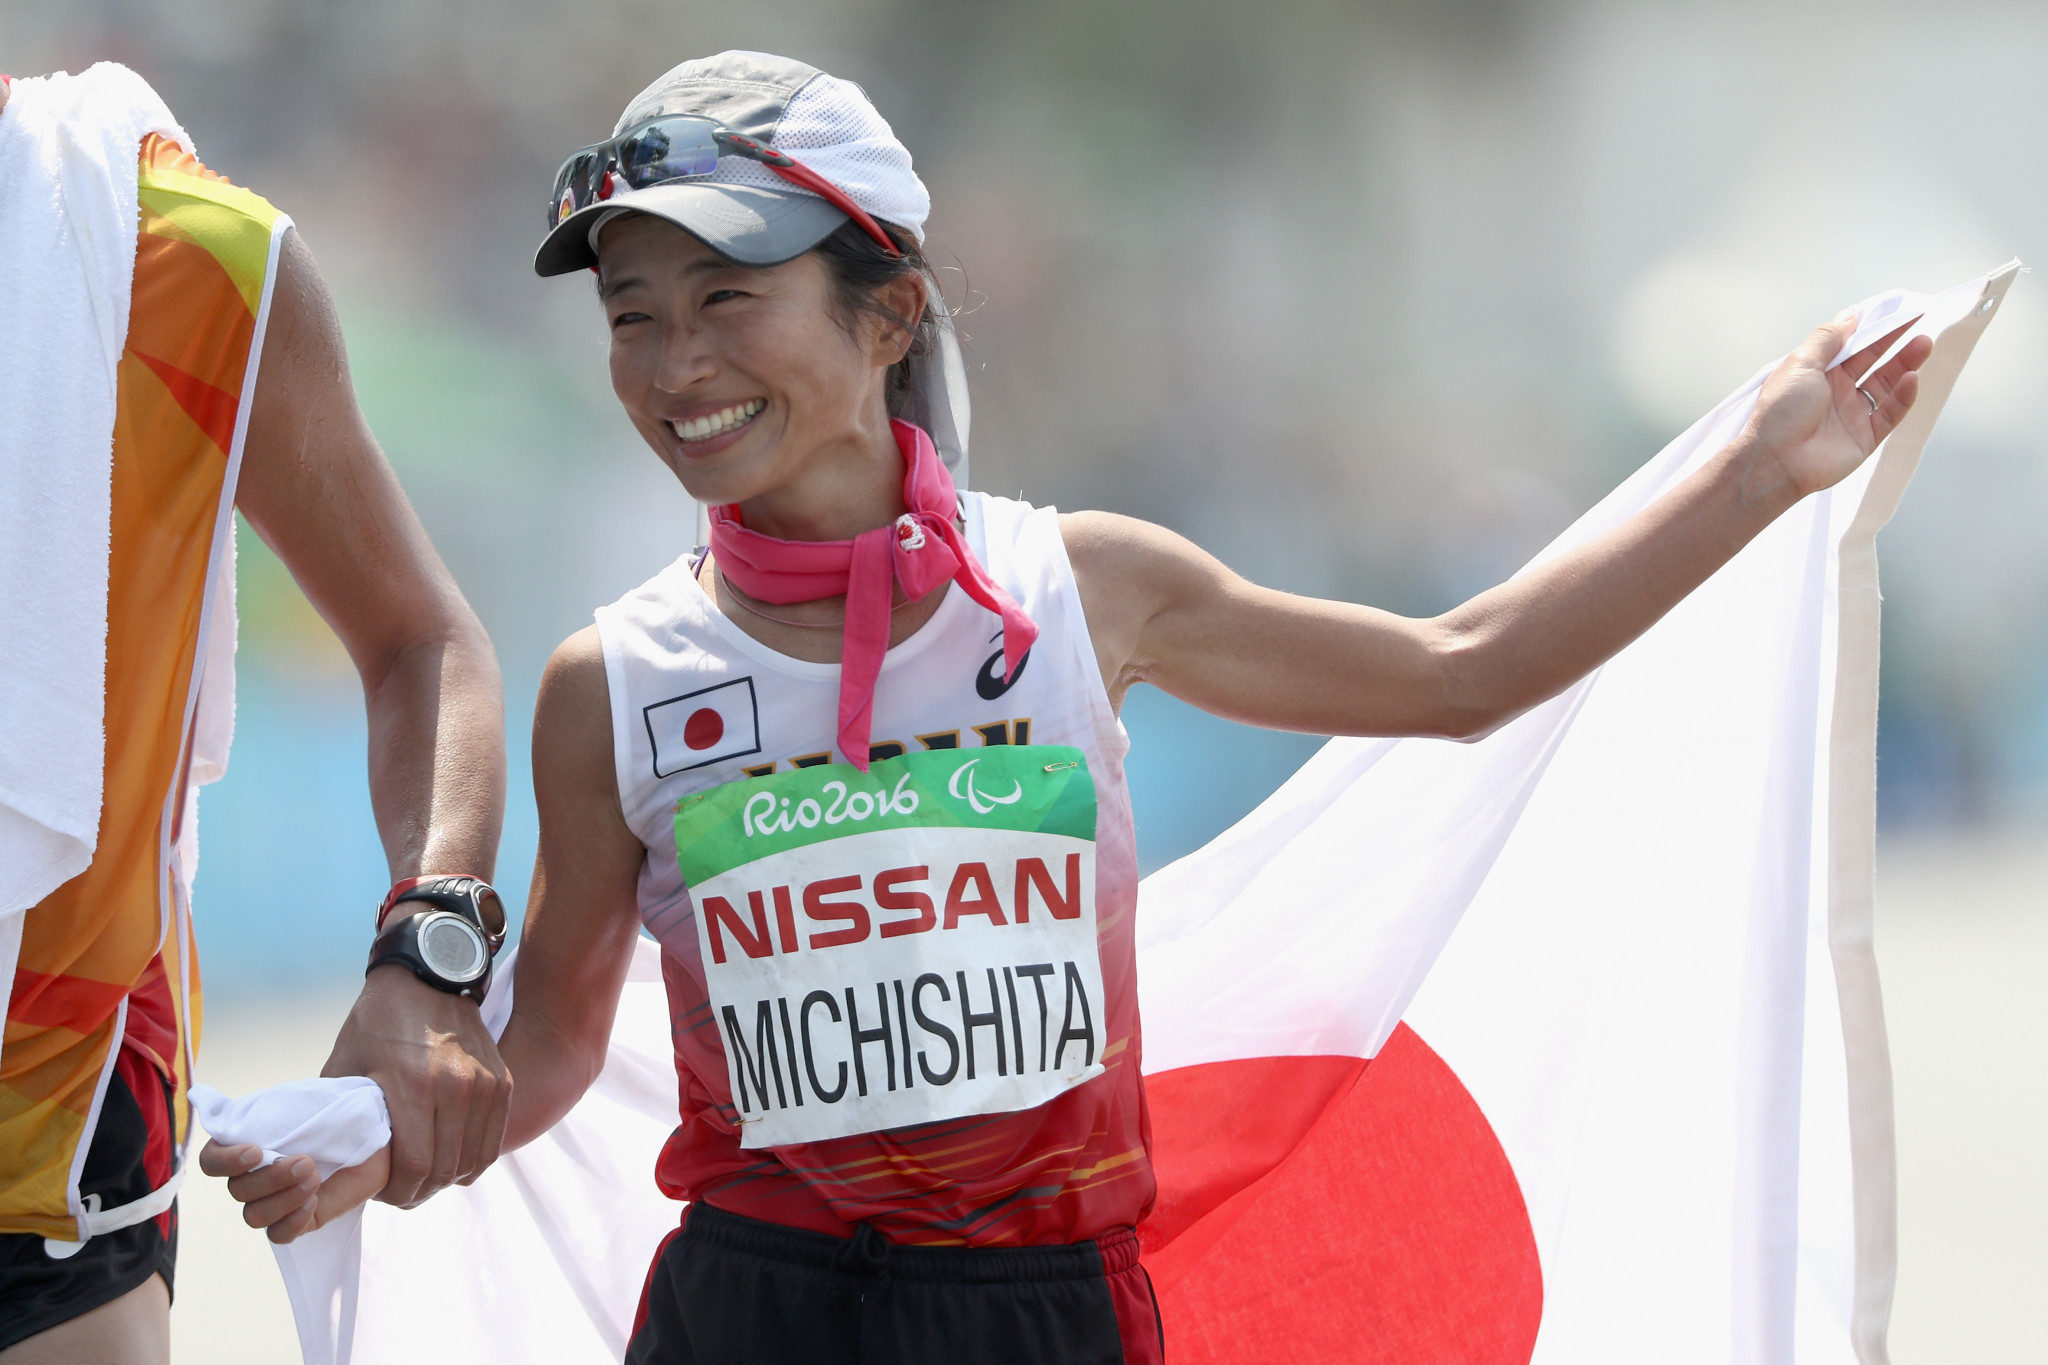 Misato Michishita is a silver medallist from the Rio 2016 Paralympics ©Getty Images